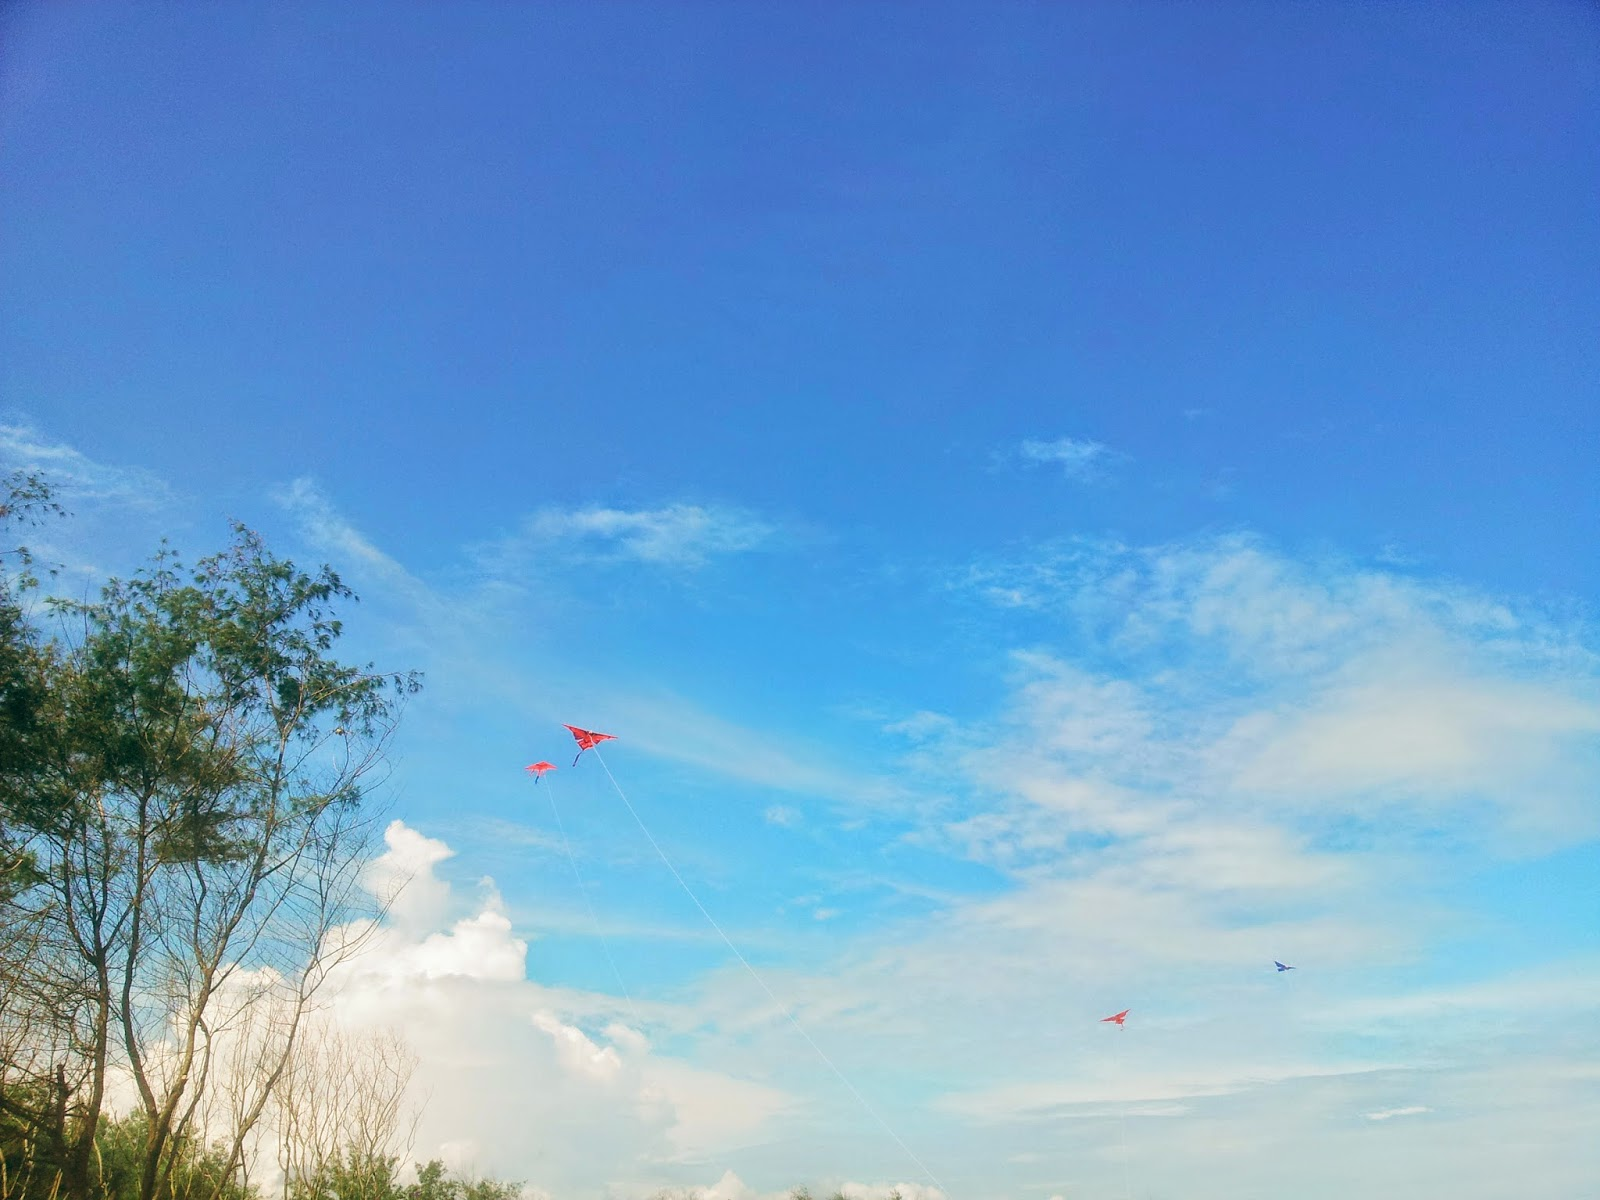 Kites on the sky of Kwaru the beach in Bantul, Jogja